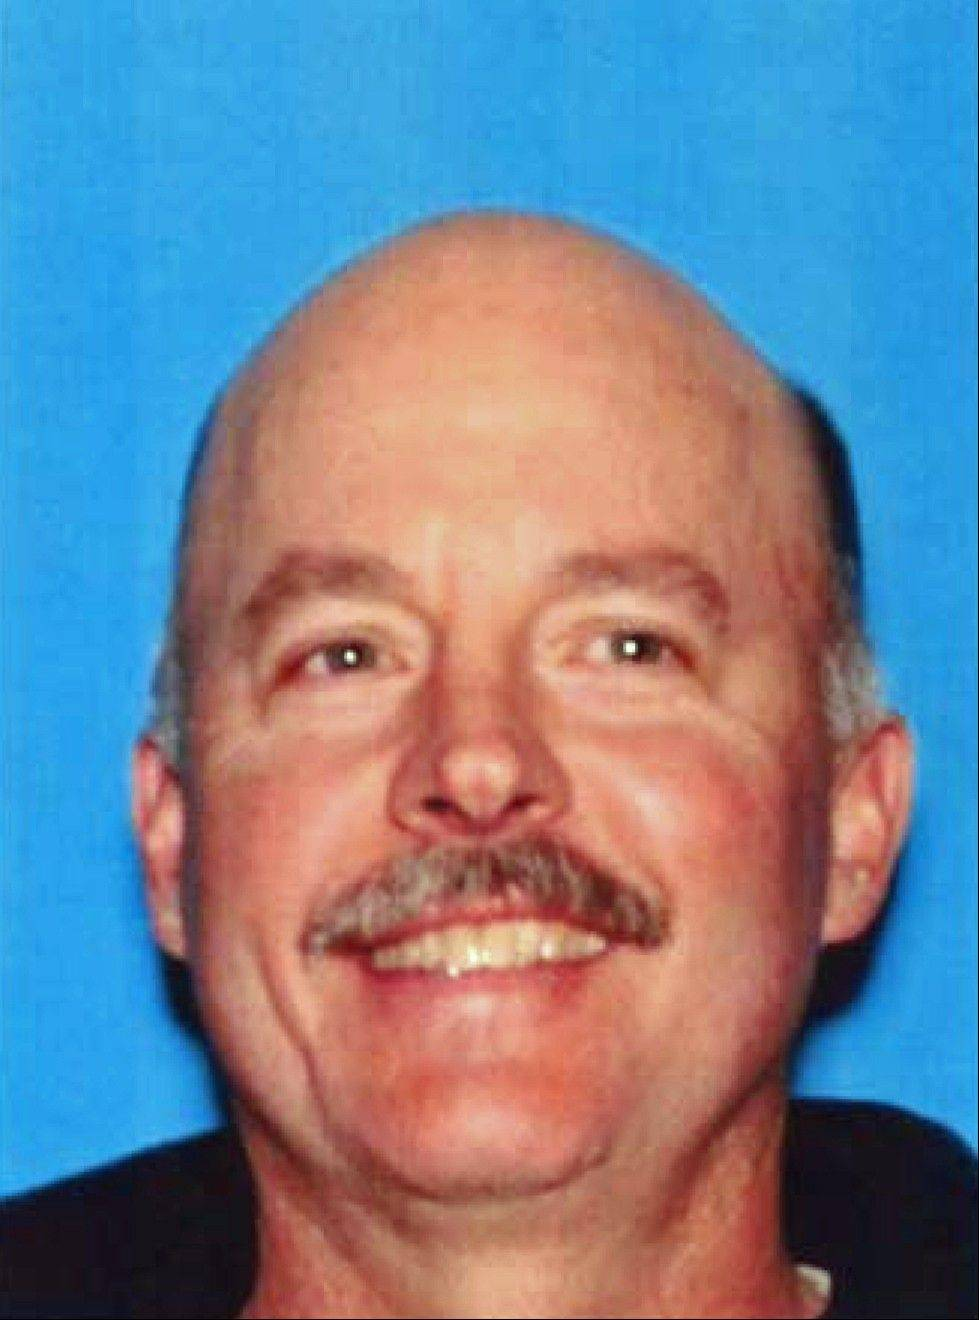 This photo provided by the California Department of Motor Vehicles via the Reno Gazette-Journal and KXTV News 10 shows Alan Frazier. Frazier, who complained he had a botched 2010 surgery, left a suicide note outlining plans for his attack before targeting physicians in a deadly rampage at a medical office that left one doctor dead and another critically wounded, police said Thursday, Dec. 19, 2013.